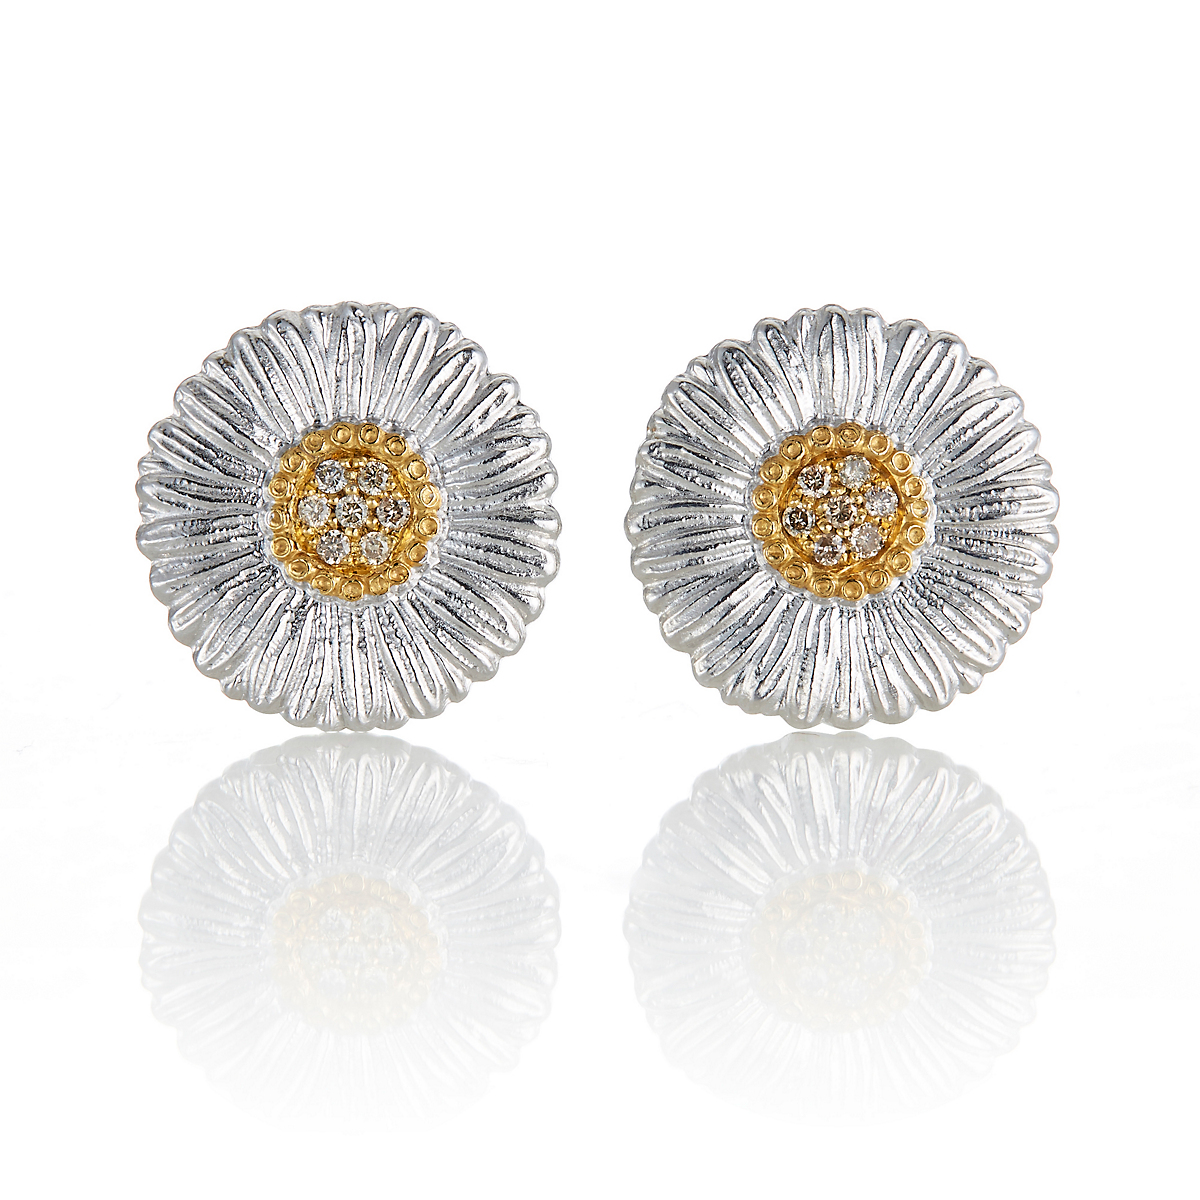 Buccellati Small Daisy Blossom With Diamonds Earrings